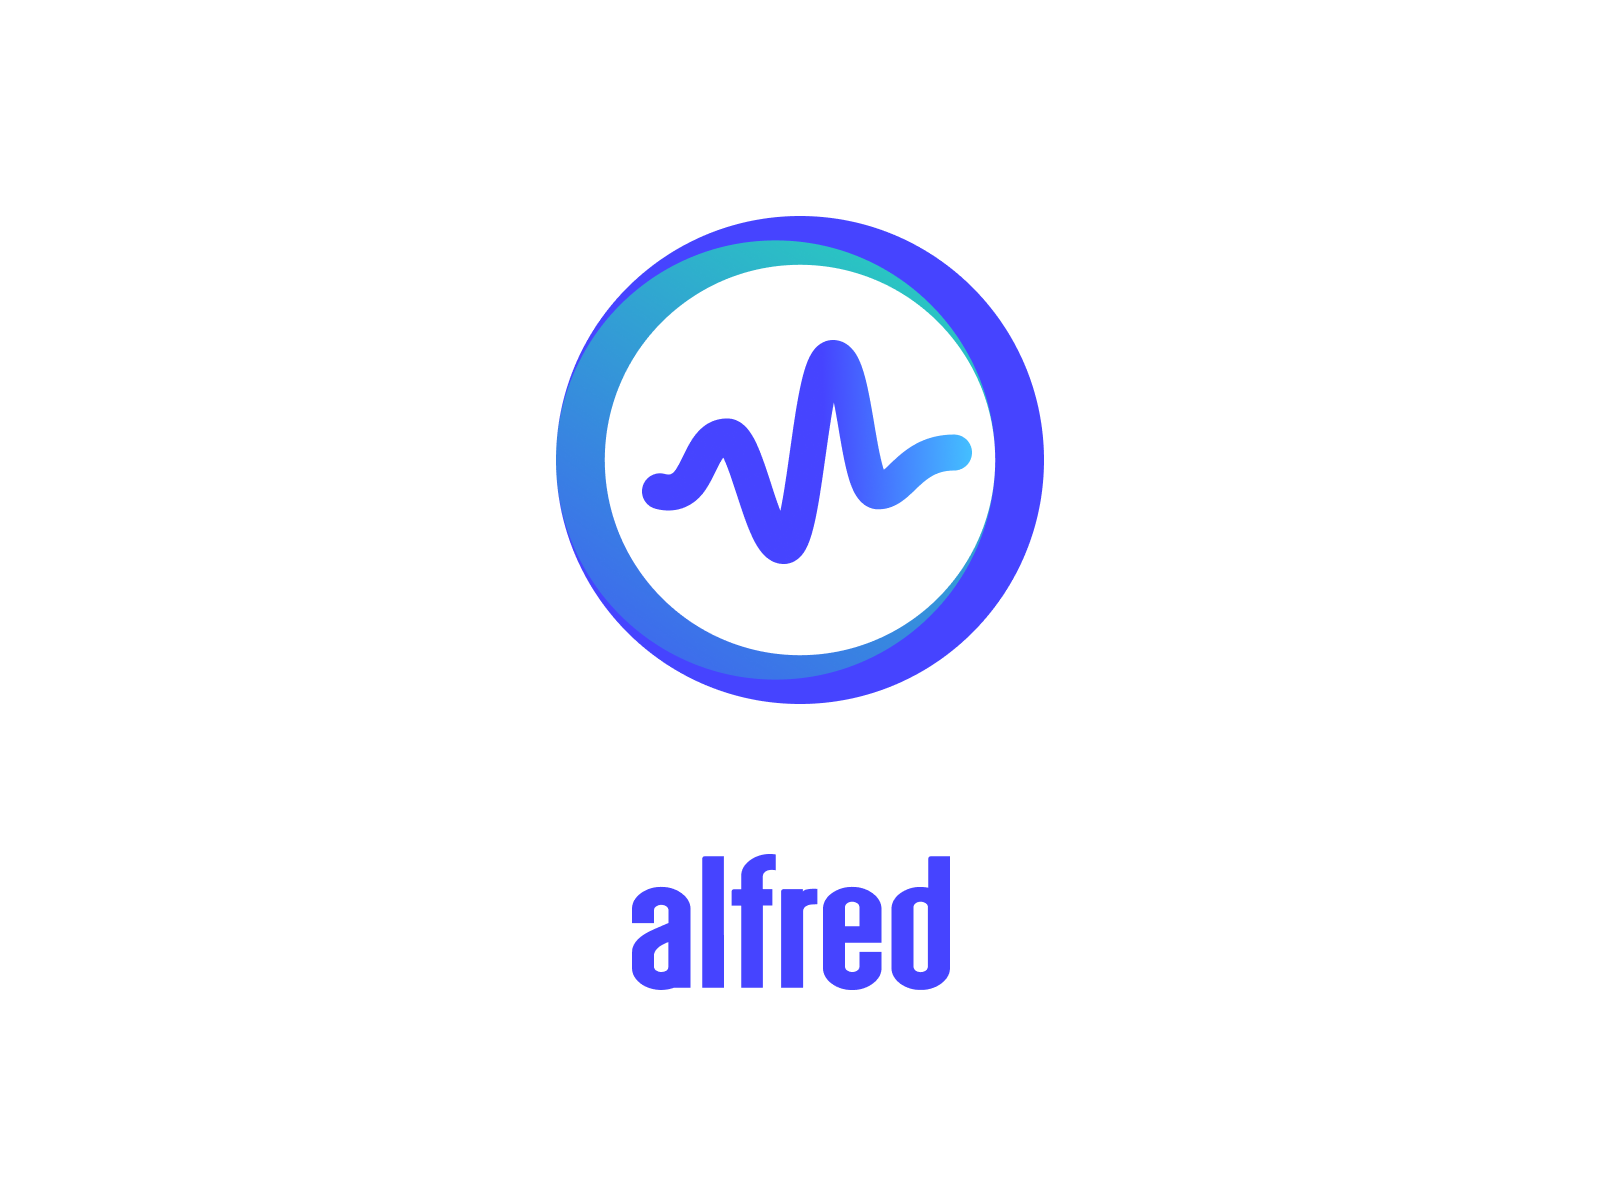 Alfred light concept 4x